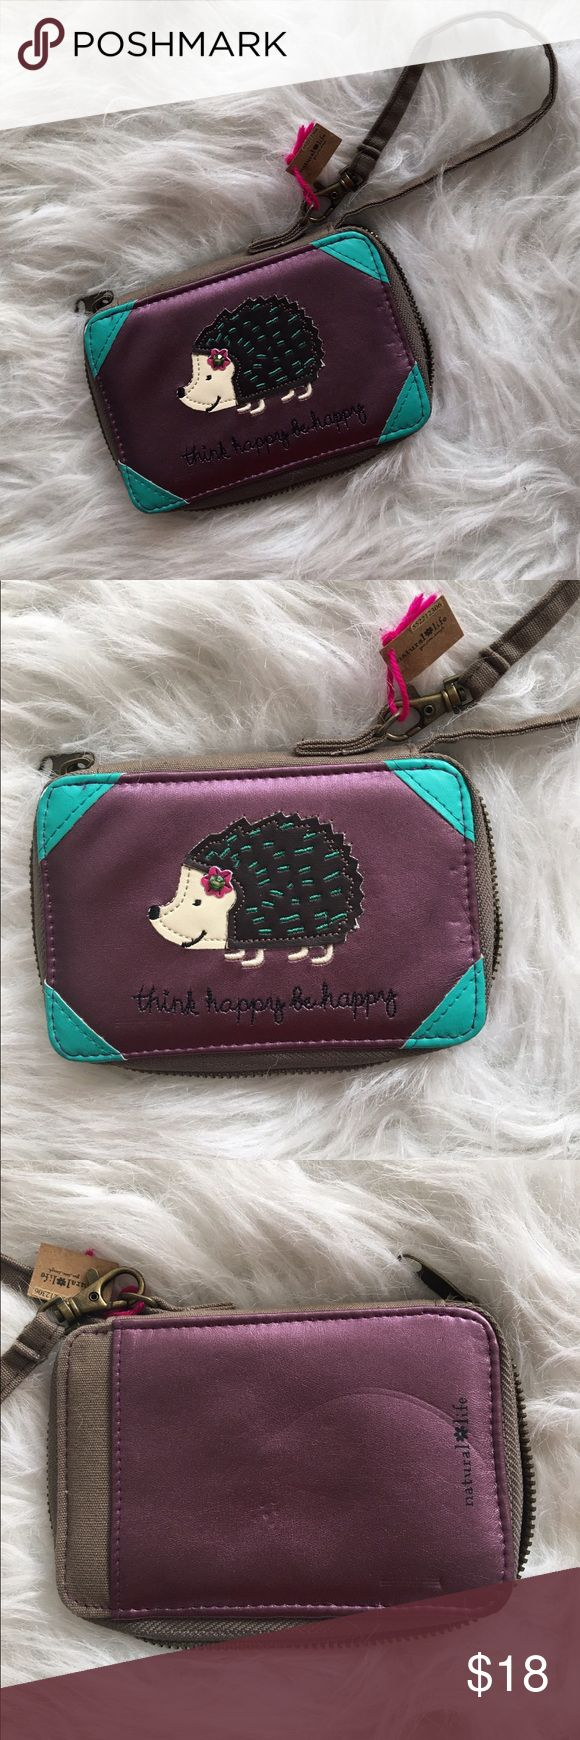 """Natural Life Hedgehog Vegan Leather Wristlet Adorable vegan leather hedgehog wallet Wristlet by Natural Life. Inspirational message: Live Happy Be Happy. Although nwt the Front & back has slight dent marks - see pics above. In otherwise great condition. 2.5"""" X 7"""" X 5"""" NATURAL LIFE Bags Clutches & Wristlets"""